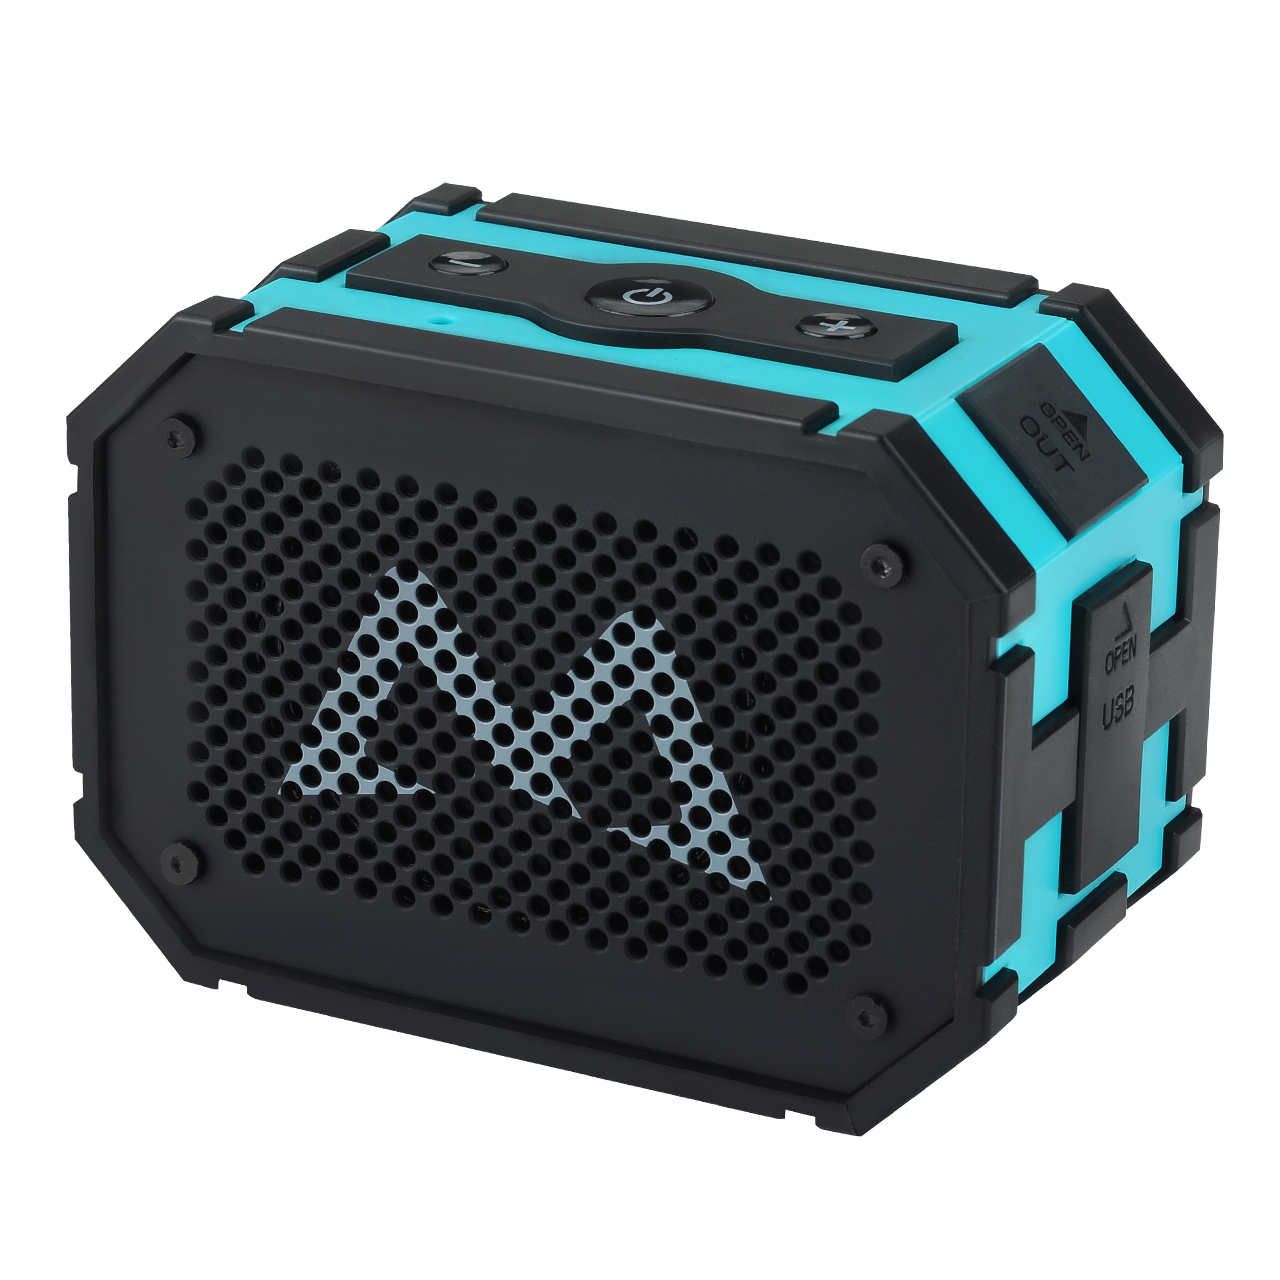 Mpow Armor Portable Wireless Bluetooth Speakers With Extral 1000 M Ah Emergency Power Bank And Splashproof Shockproof Dustproof For Outdoor / shower